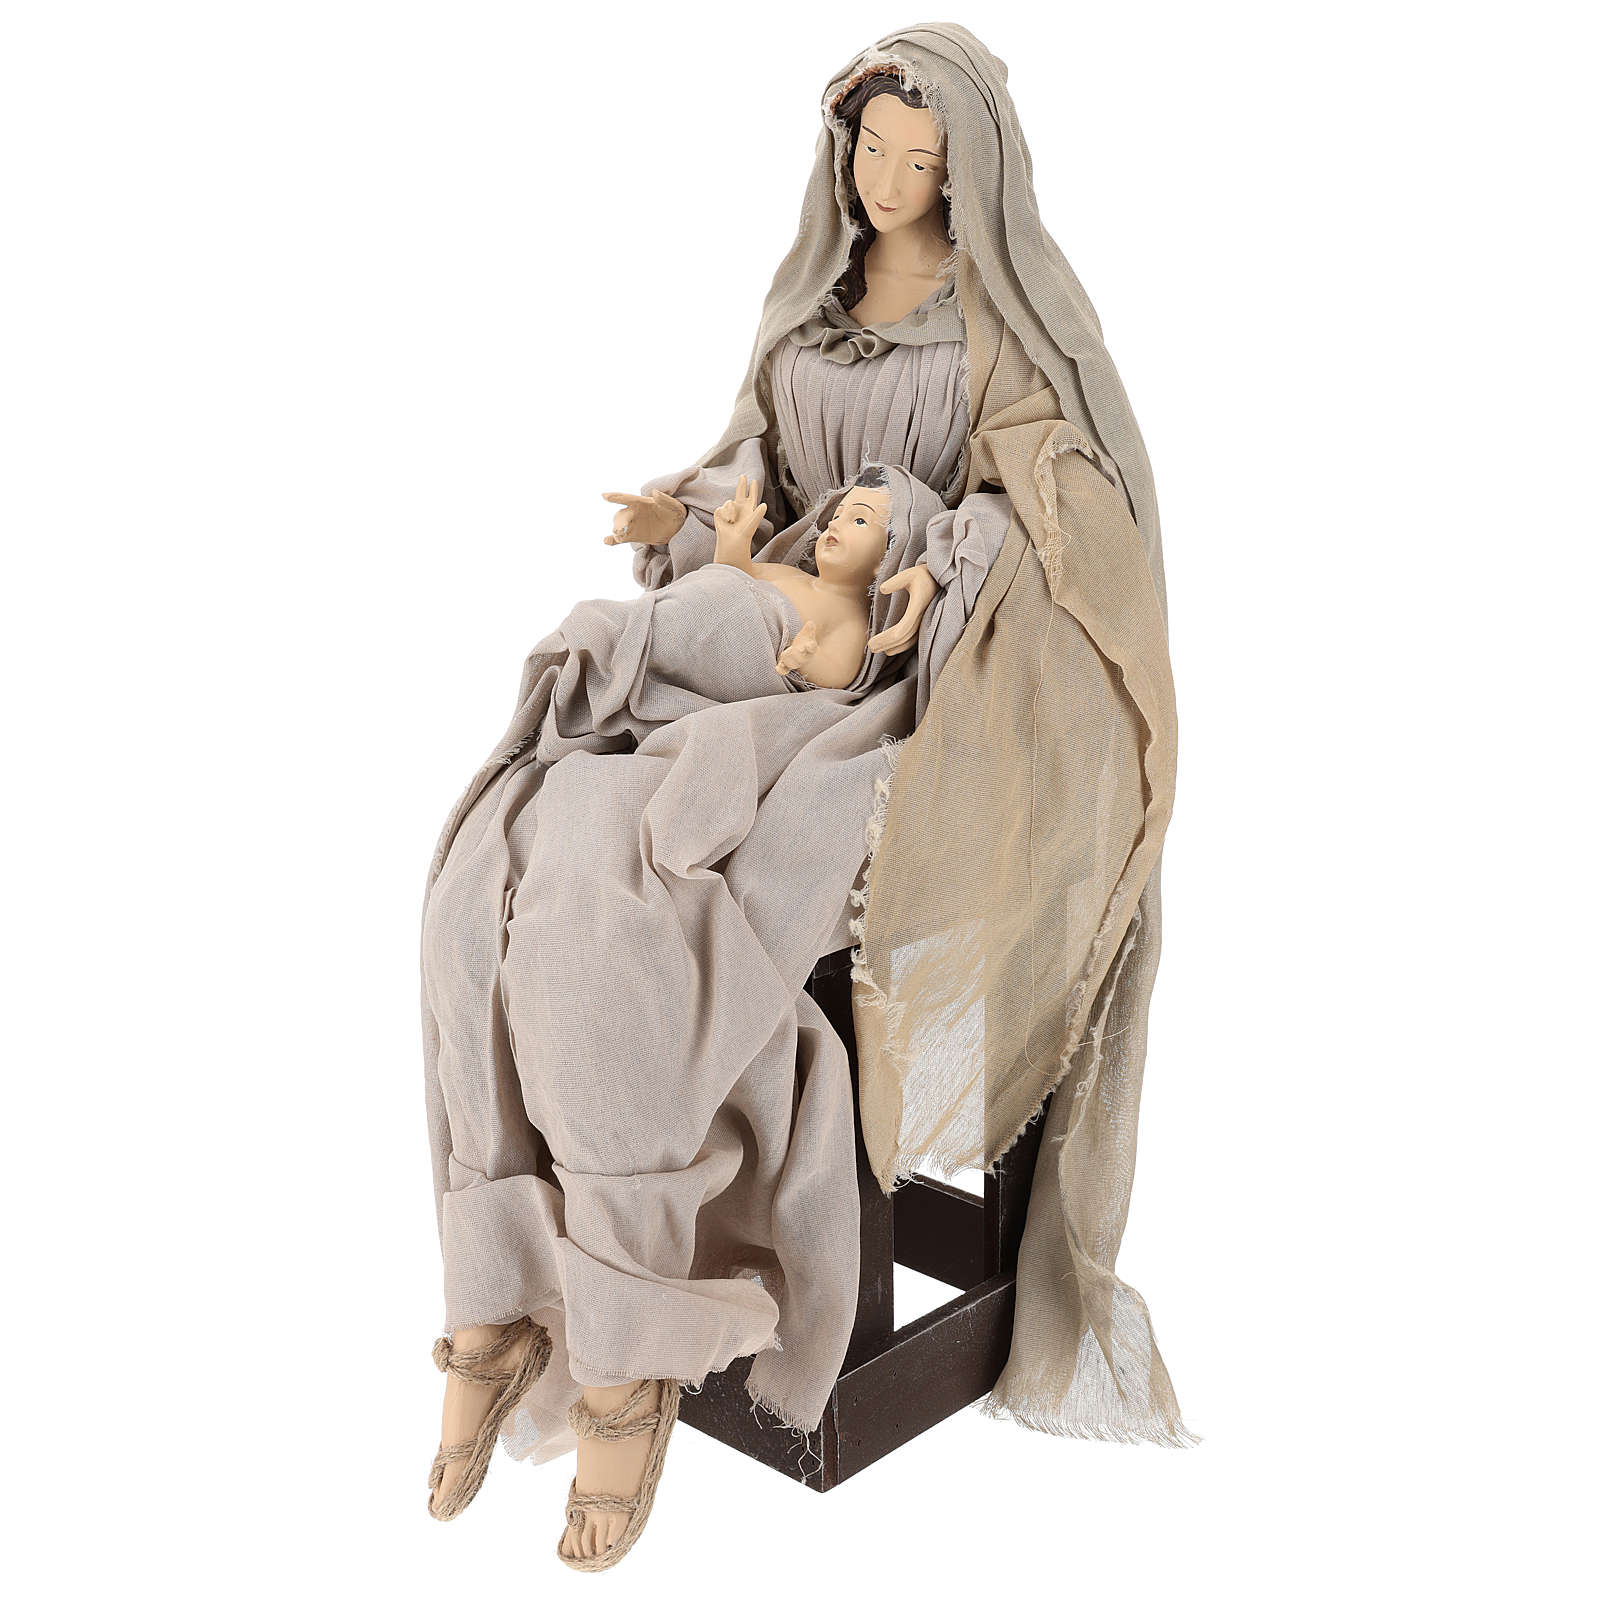 Nativity 80 cm in Shabby Chic style with fabric and lace details 3